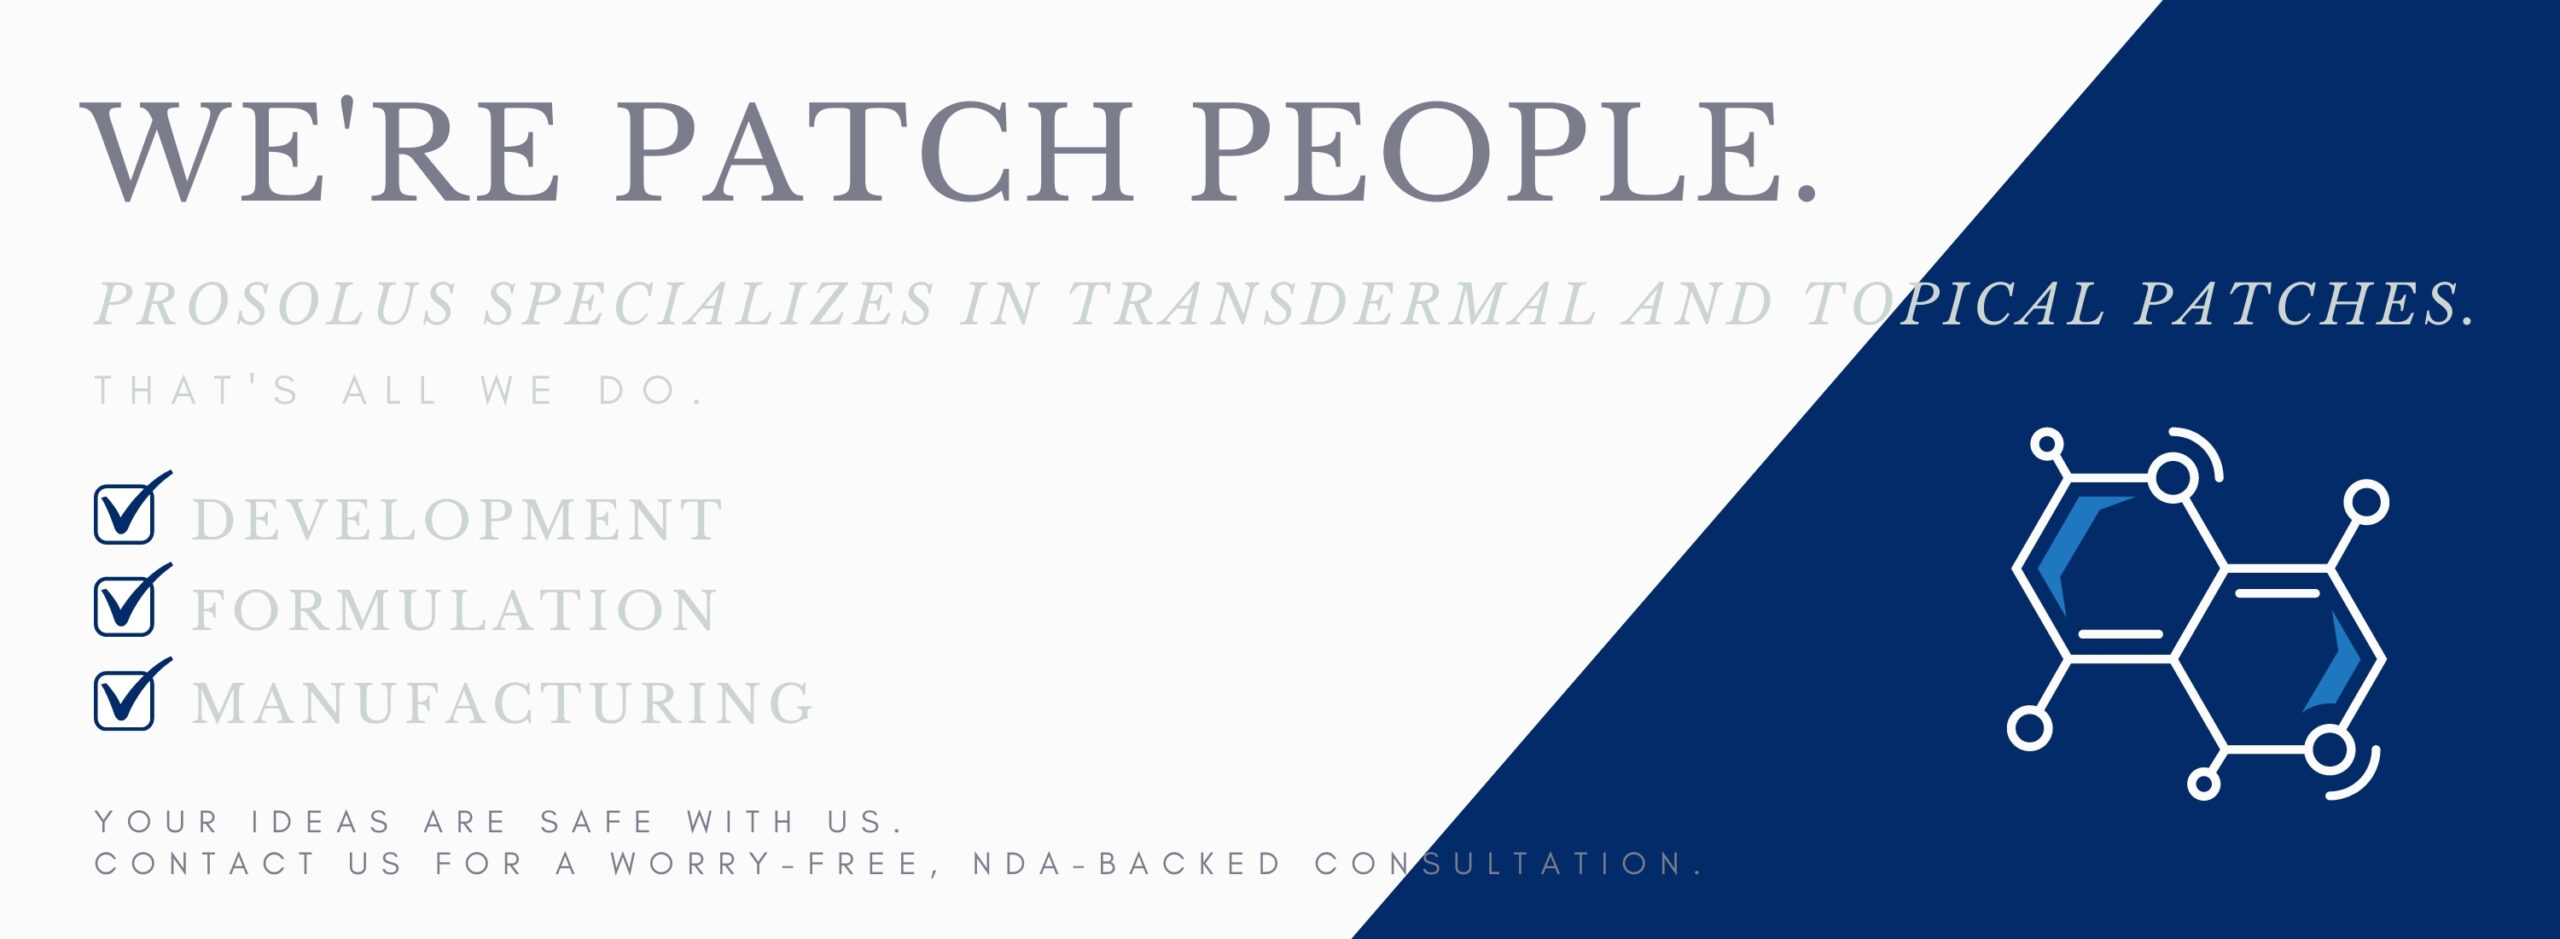 Transdermal Patch Manufacturers